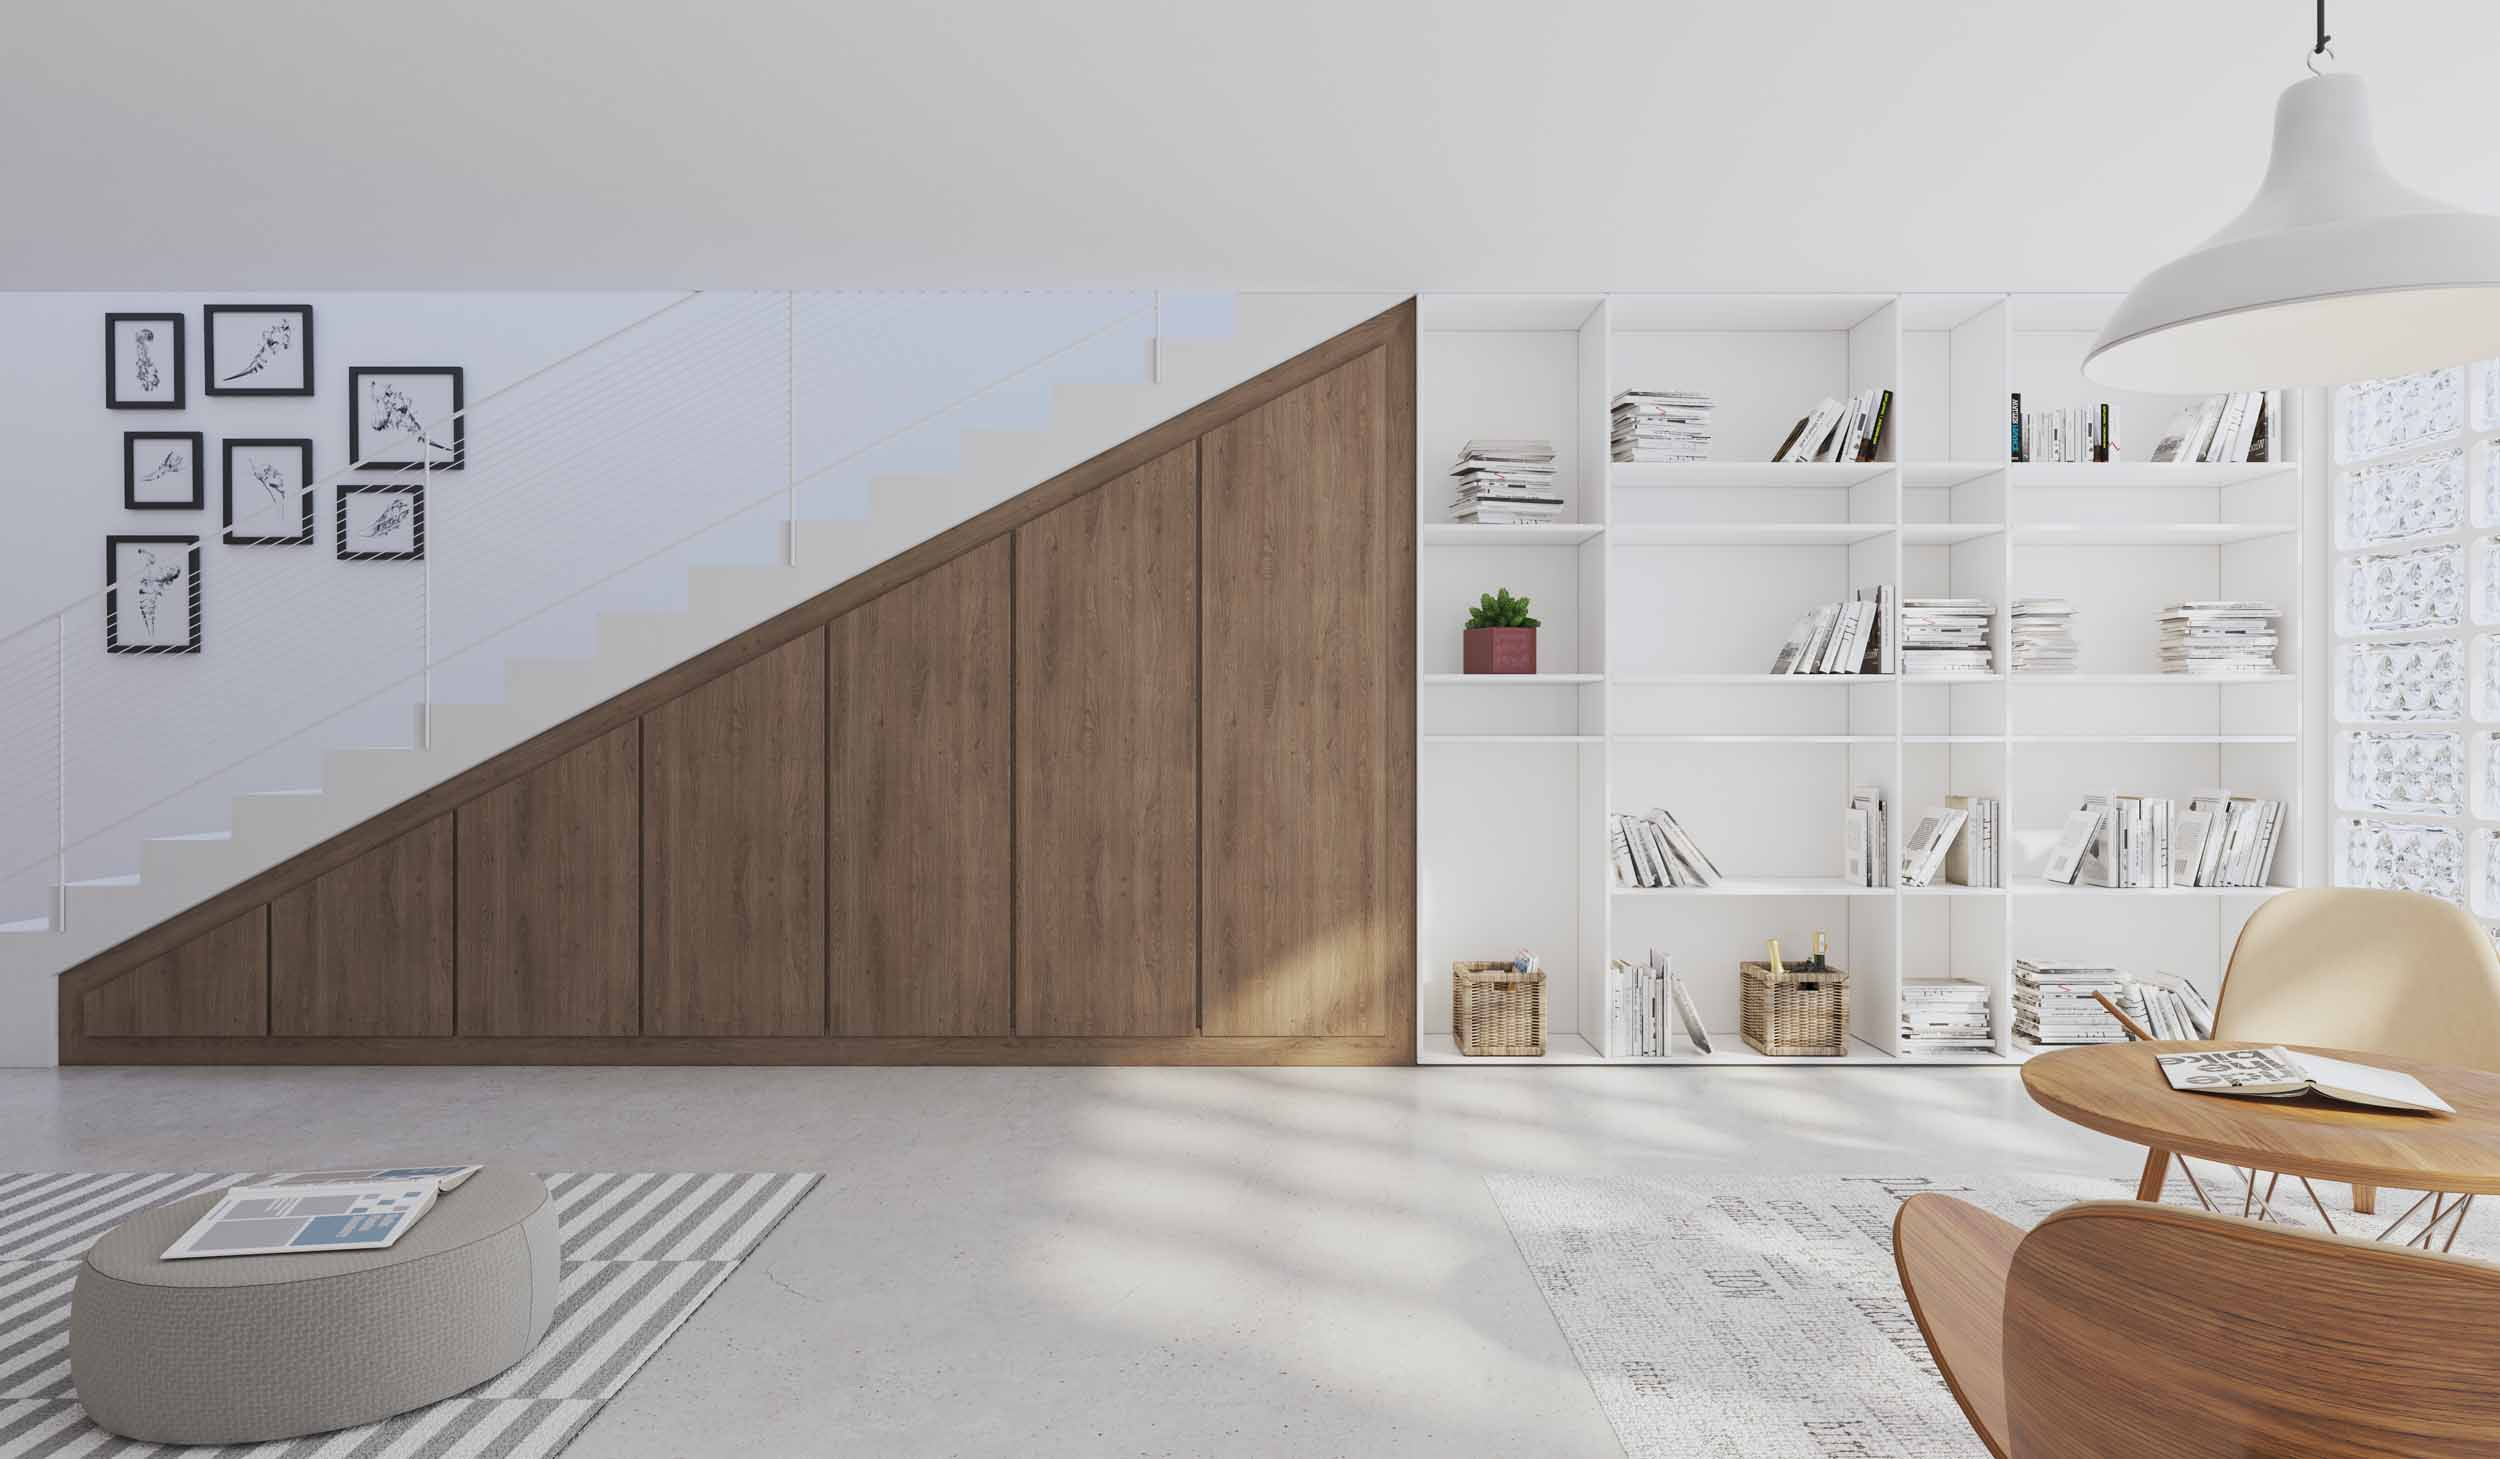 Under Staircase Storage in Woodgrain Finish With White Display Shelving